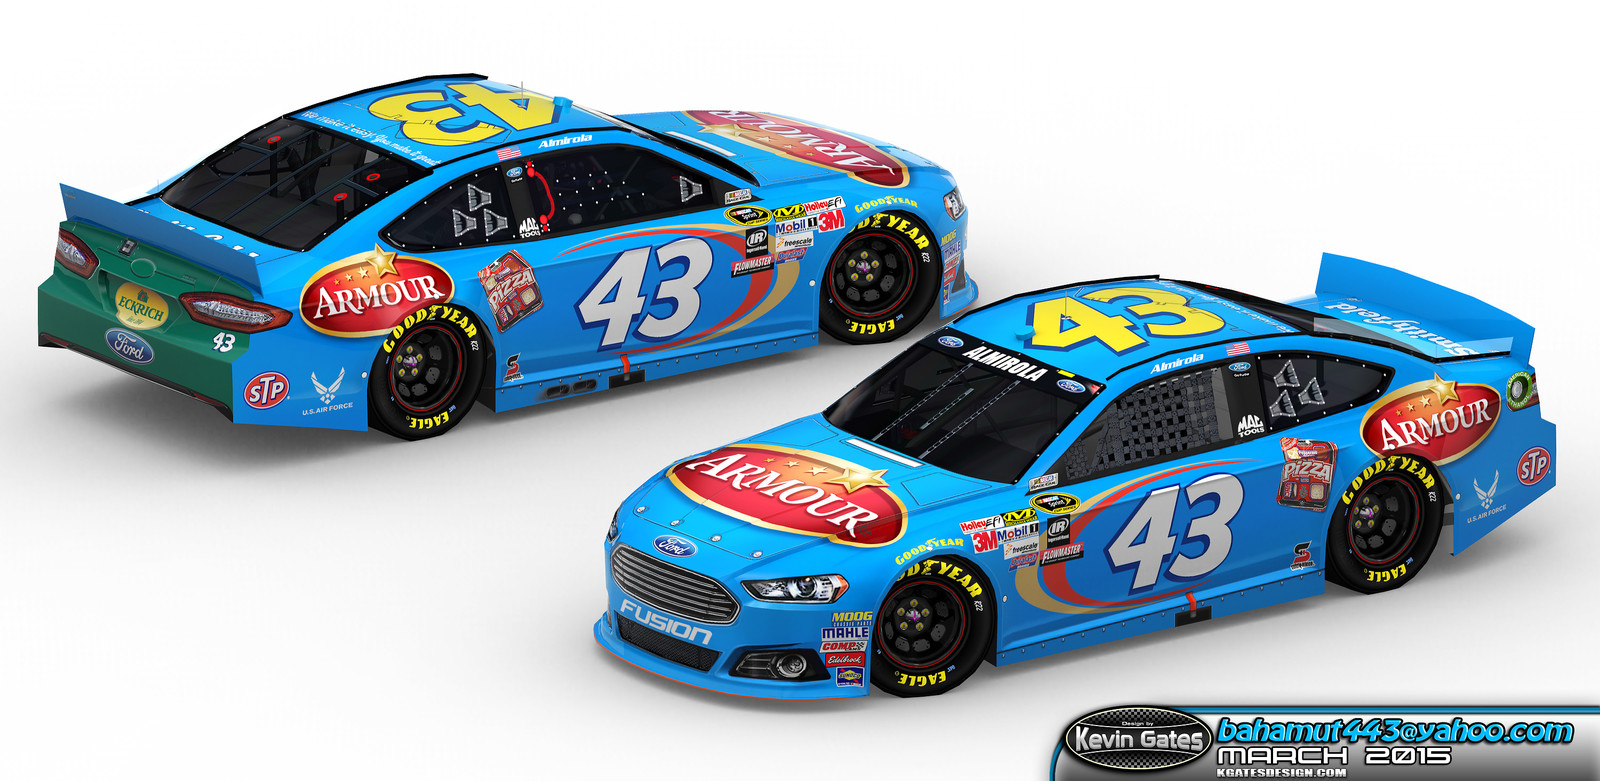 Original Autodesk 3DS Max render of the finalized 2015 #43 Armour Ford Fusion driven by NASCAR Sprint Cup Series driver Aric Almirola of Richard Petty Motorsports